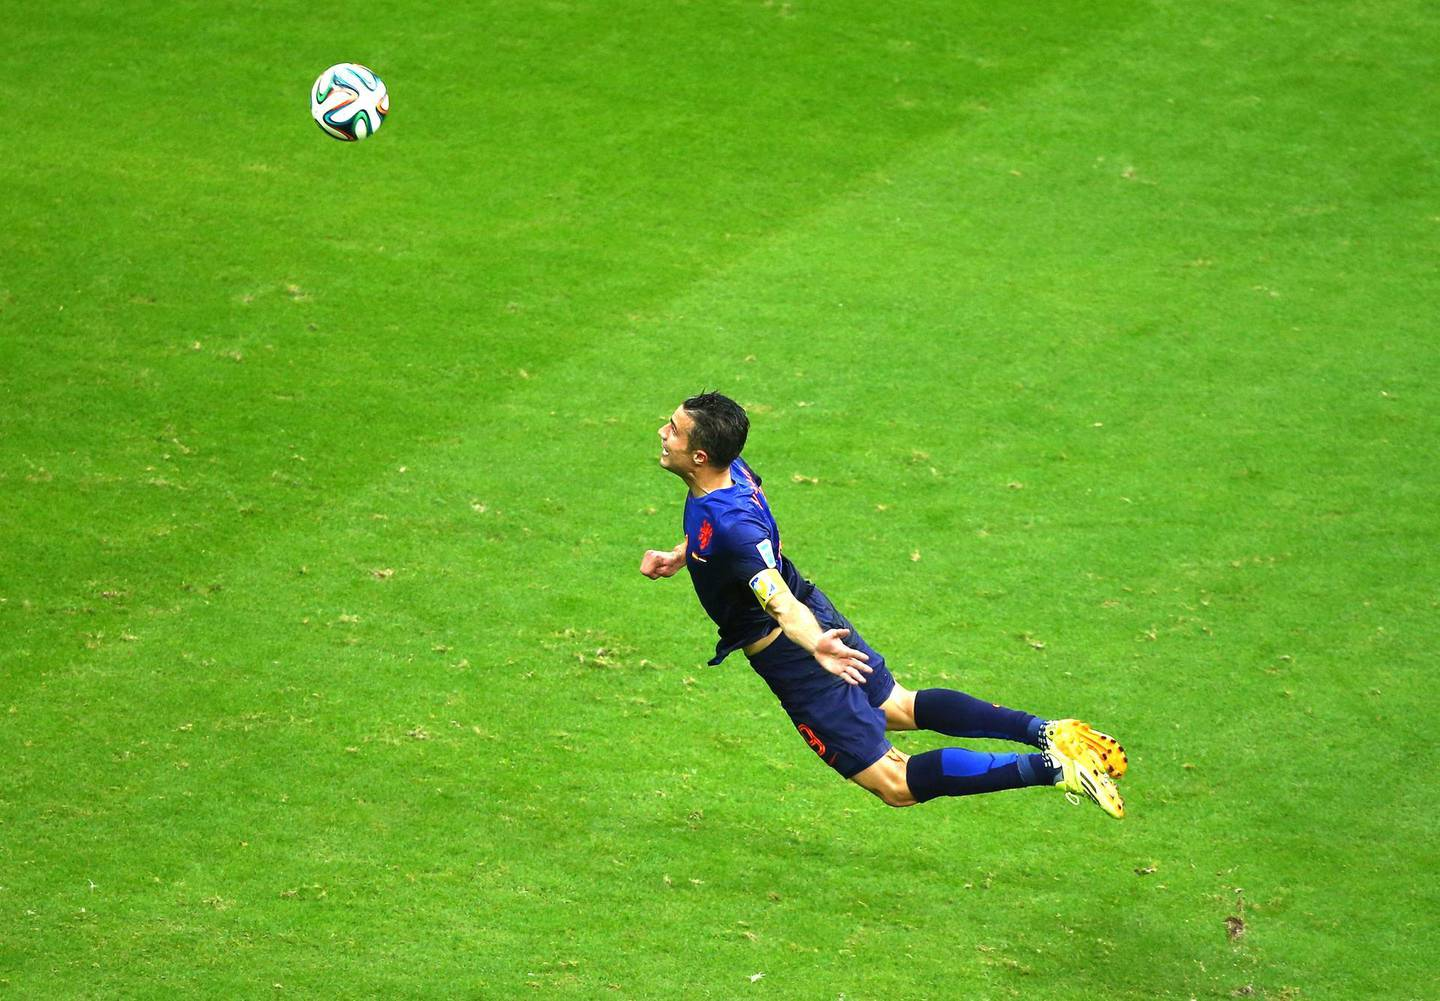 SALVADOR, BRAZIL - JUNE 13:  Robin van Persie of the Netherlands scores the team's first goal with a diving header in the first half during the 2014 FIFA World Cup Brazil Group B match between Spain and Netherlands at Arena Fonte Nova on June 13, 2014 in Salvador, Brazil.  (Photo by Jeff Gross/Getty Images)